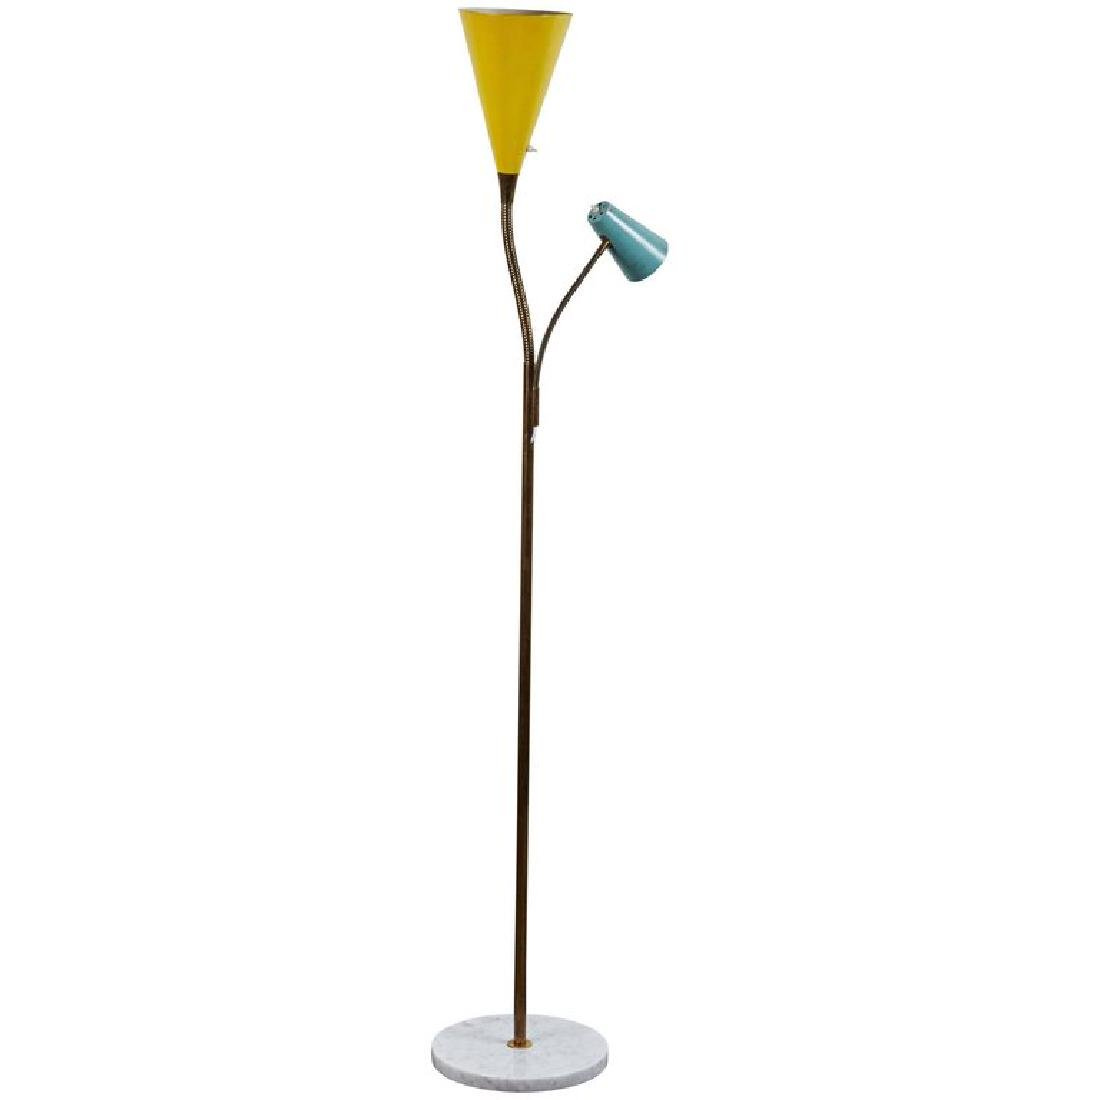 Gino Sarfatti Model 1044 Floor Lamp